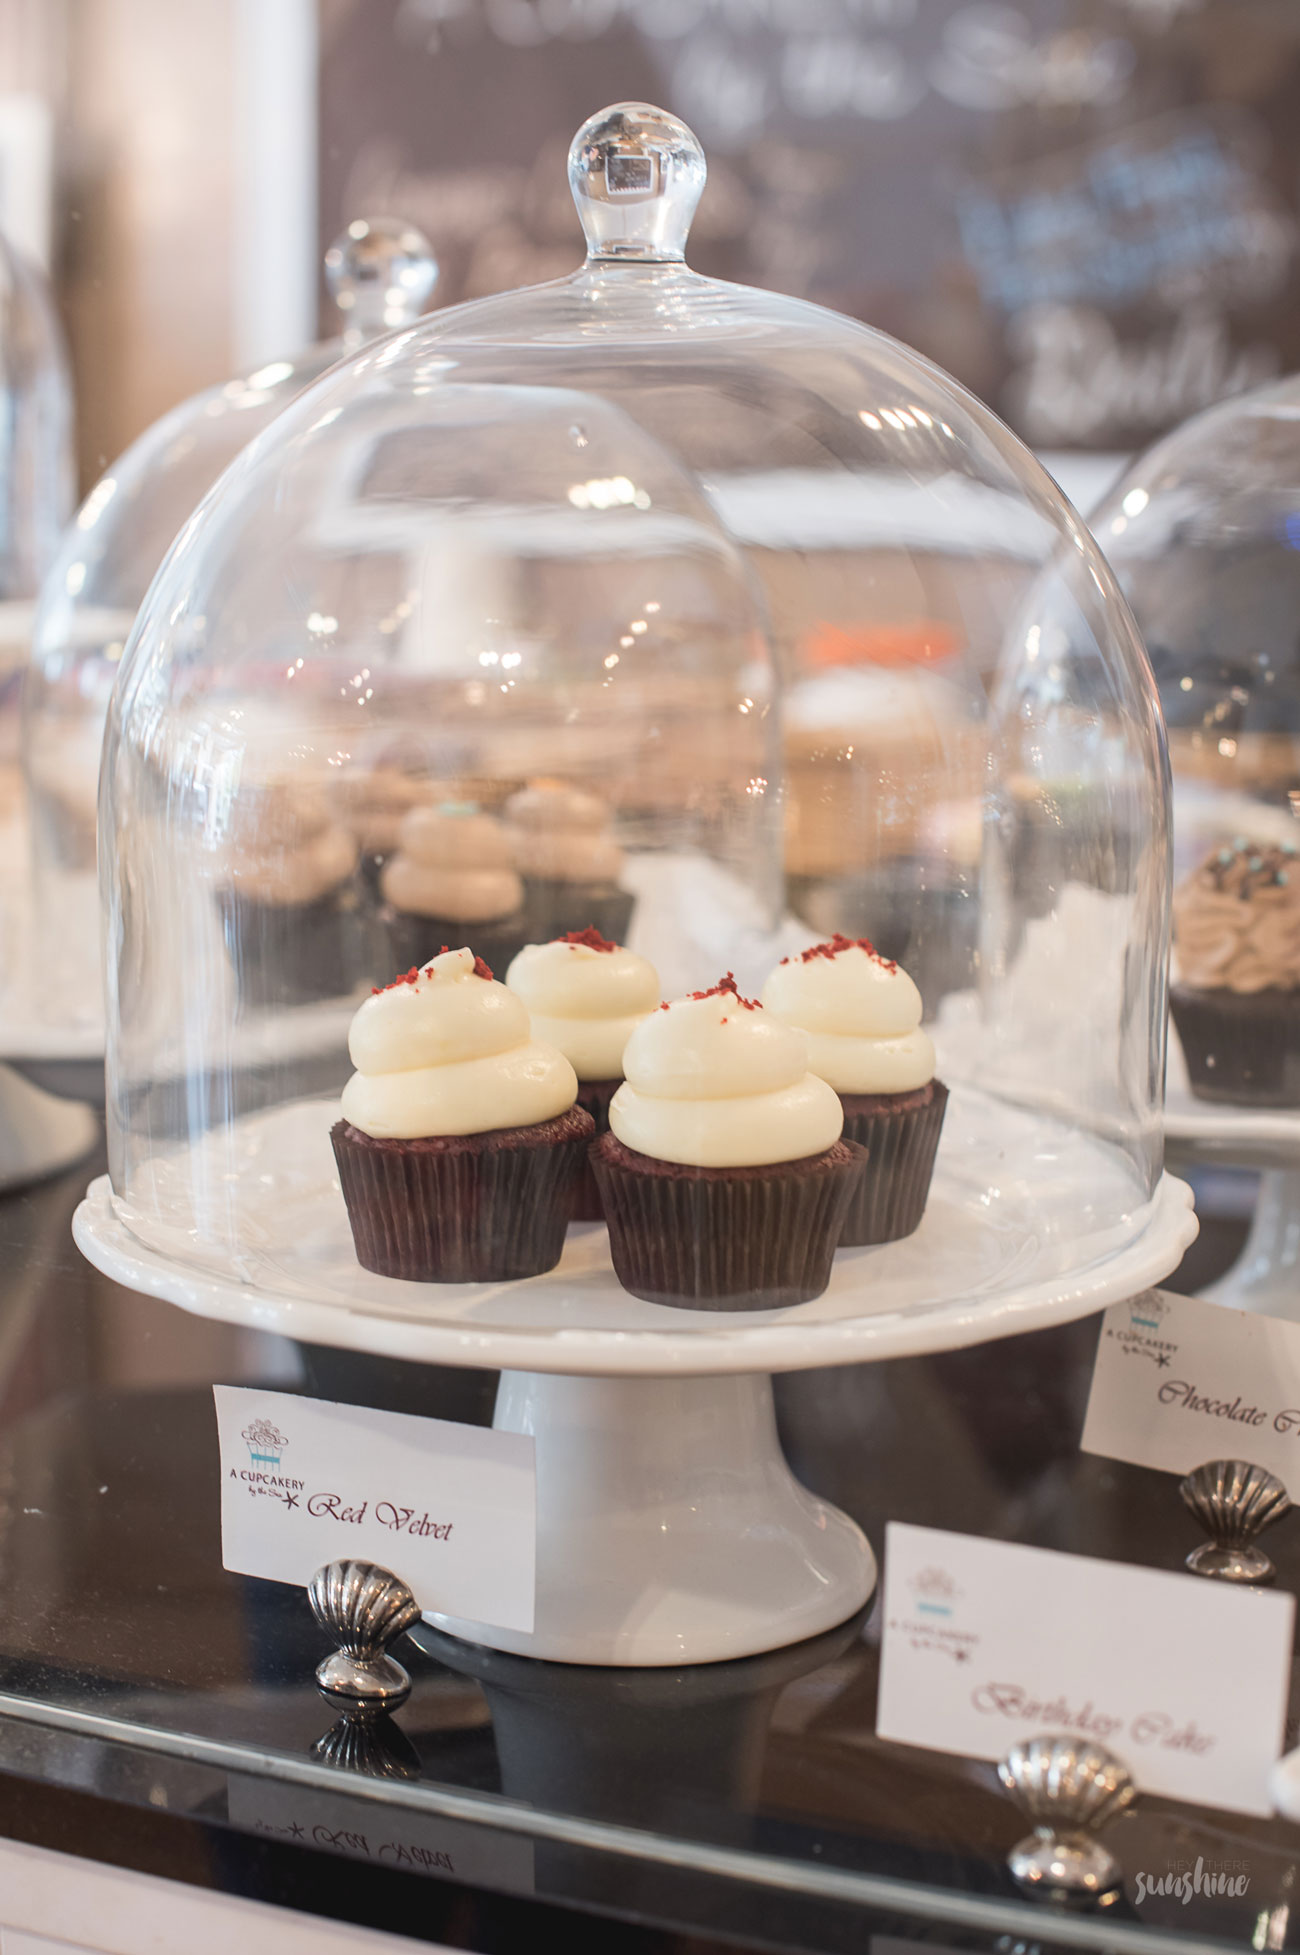 A Cupcakery by the Sea in Ft. Walton Beach, Florida